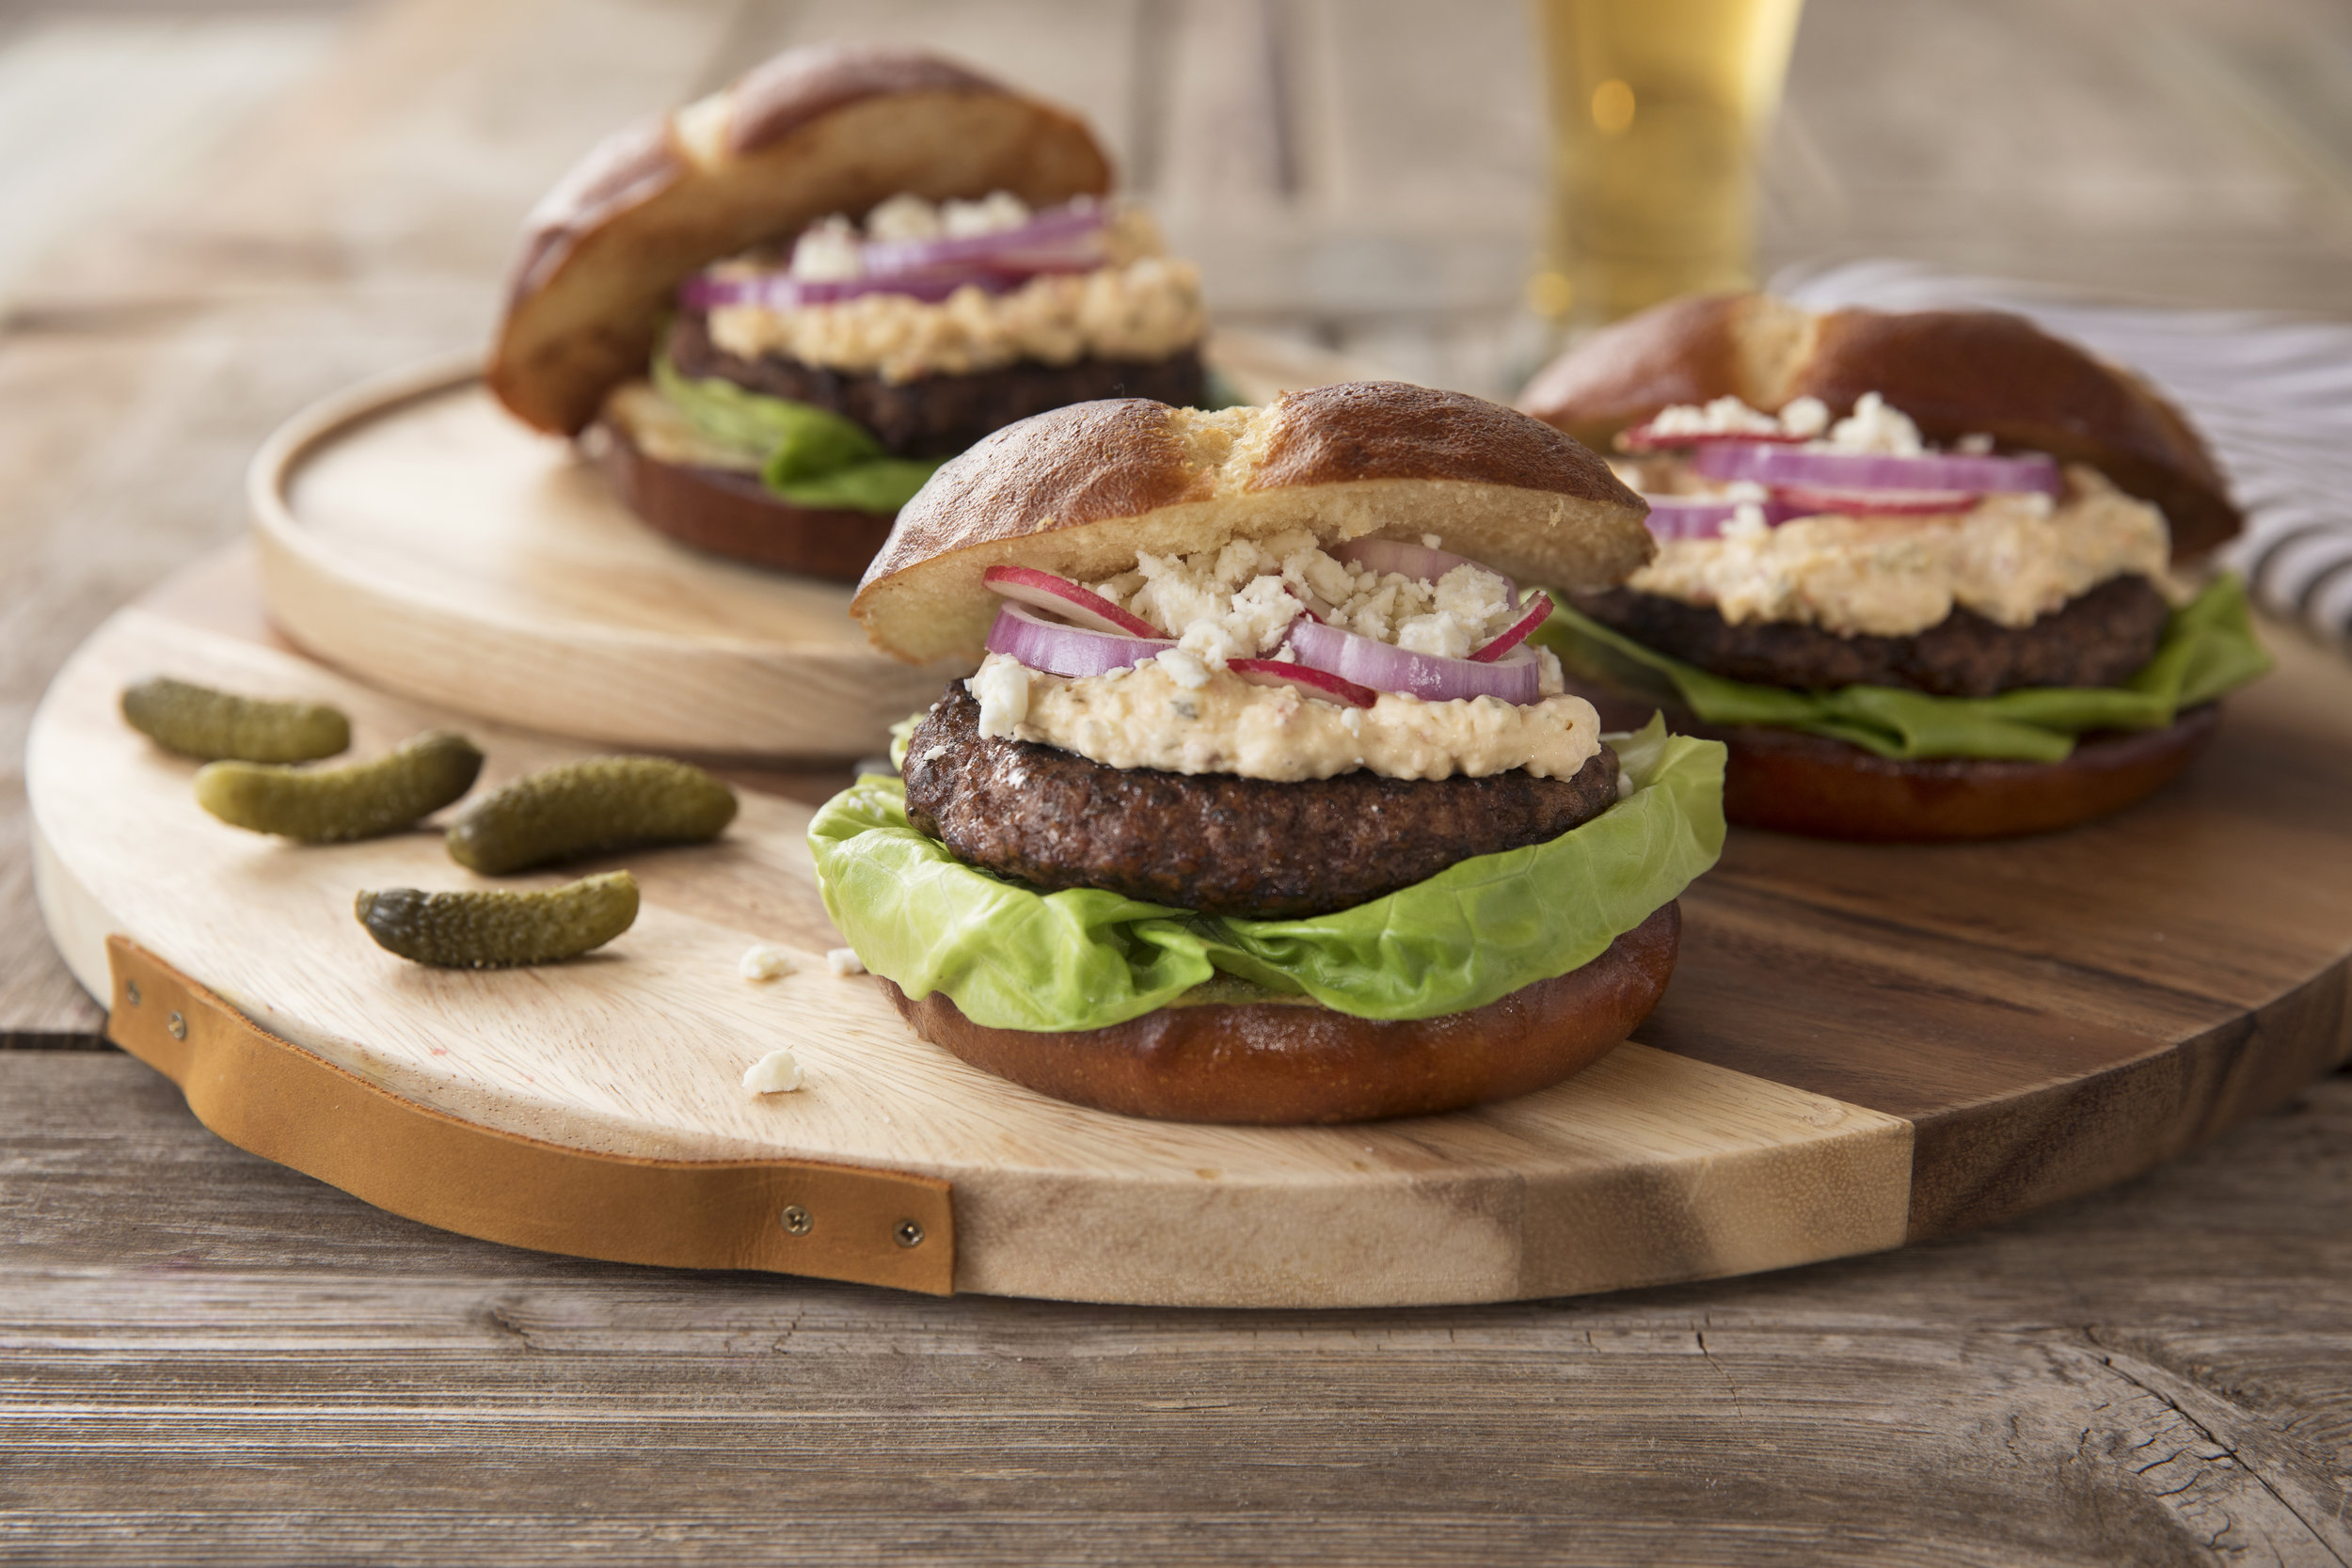 Spicy Pickle Burger - Ingredients 4 seasoned burger patties1 tub darling spicy pickle dipoptional: buns, sliced tomatoes,onions and lettuceInstructionsAfter grilling your burgers, smear patty with spicy pickle dip and top with the burger accompaniments of your choice.